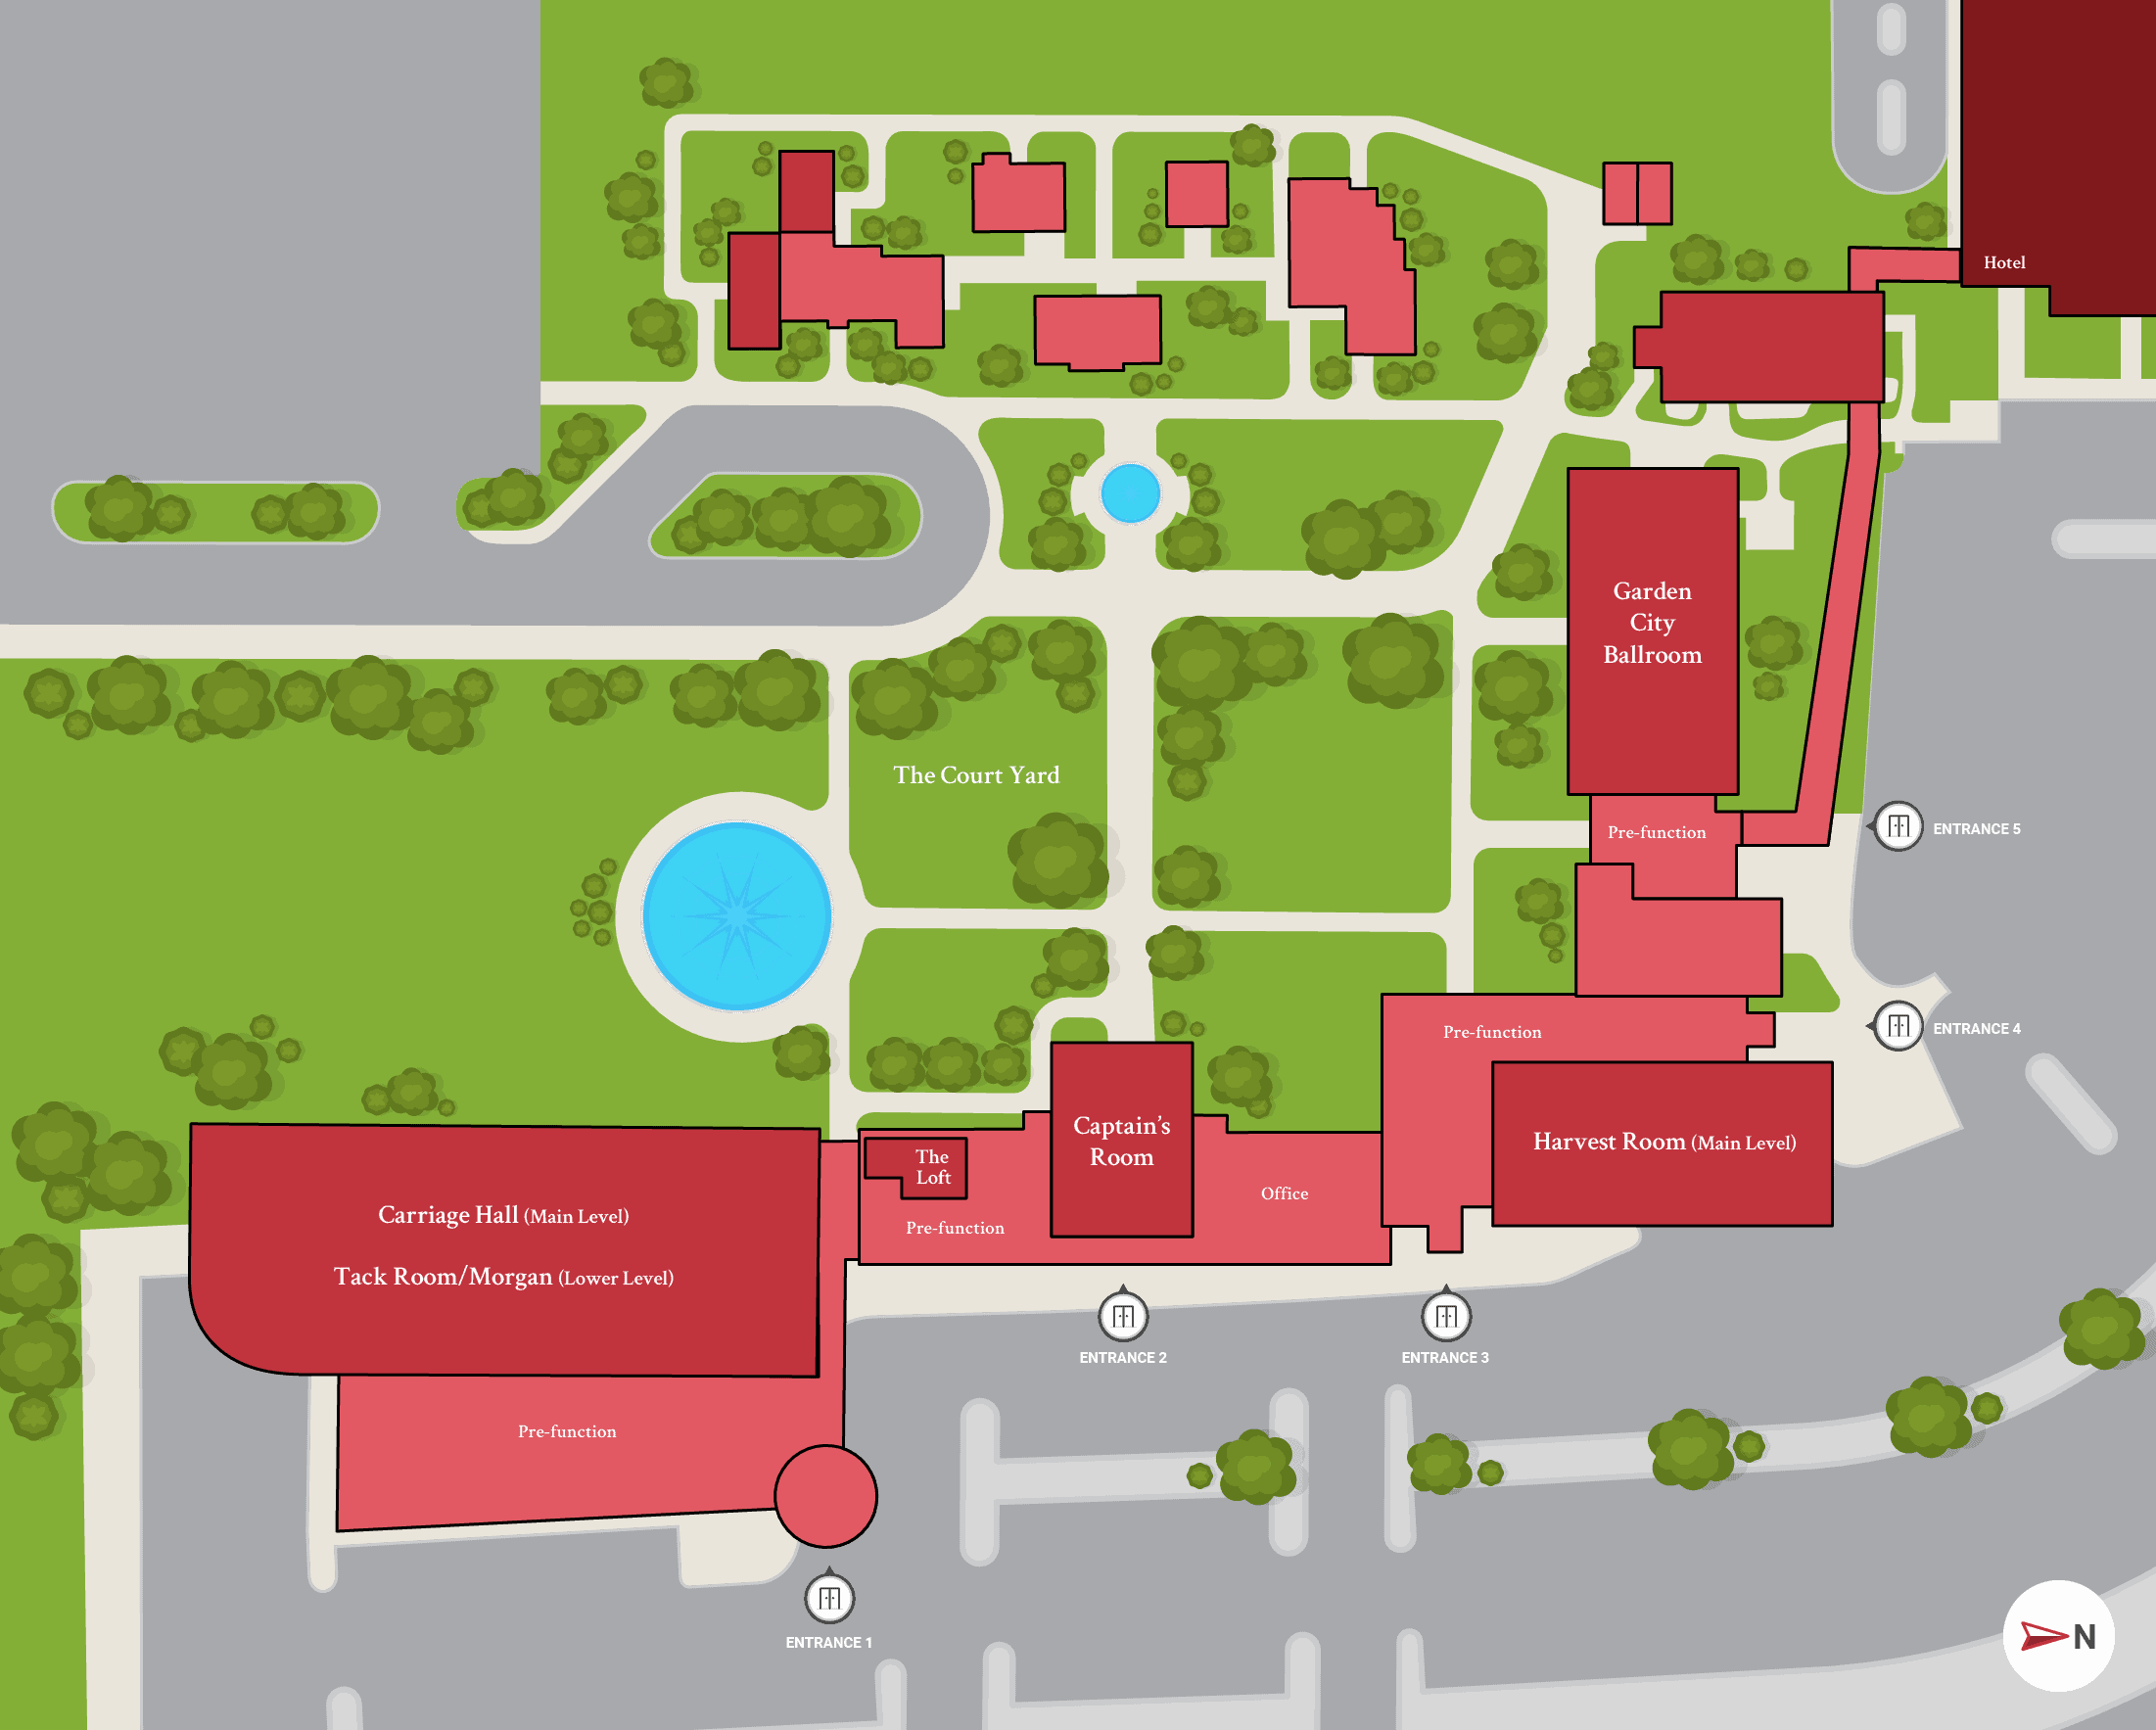 Earle Brown Facility Map